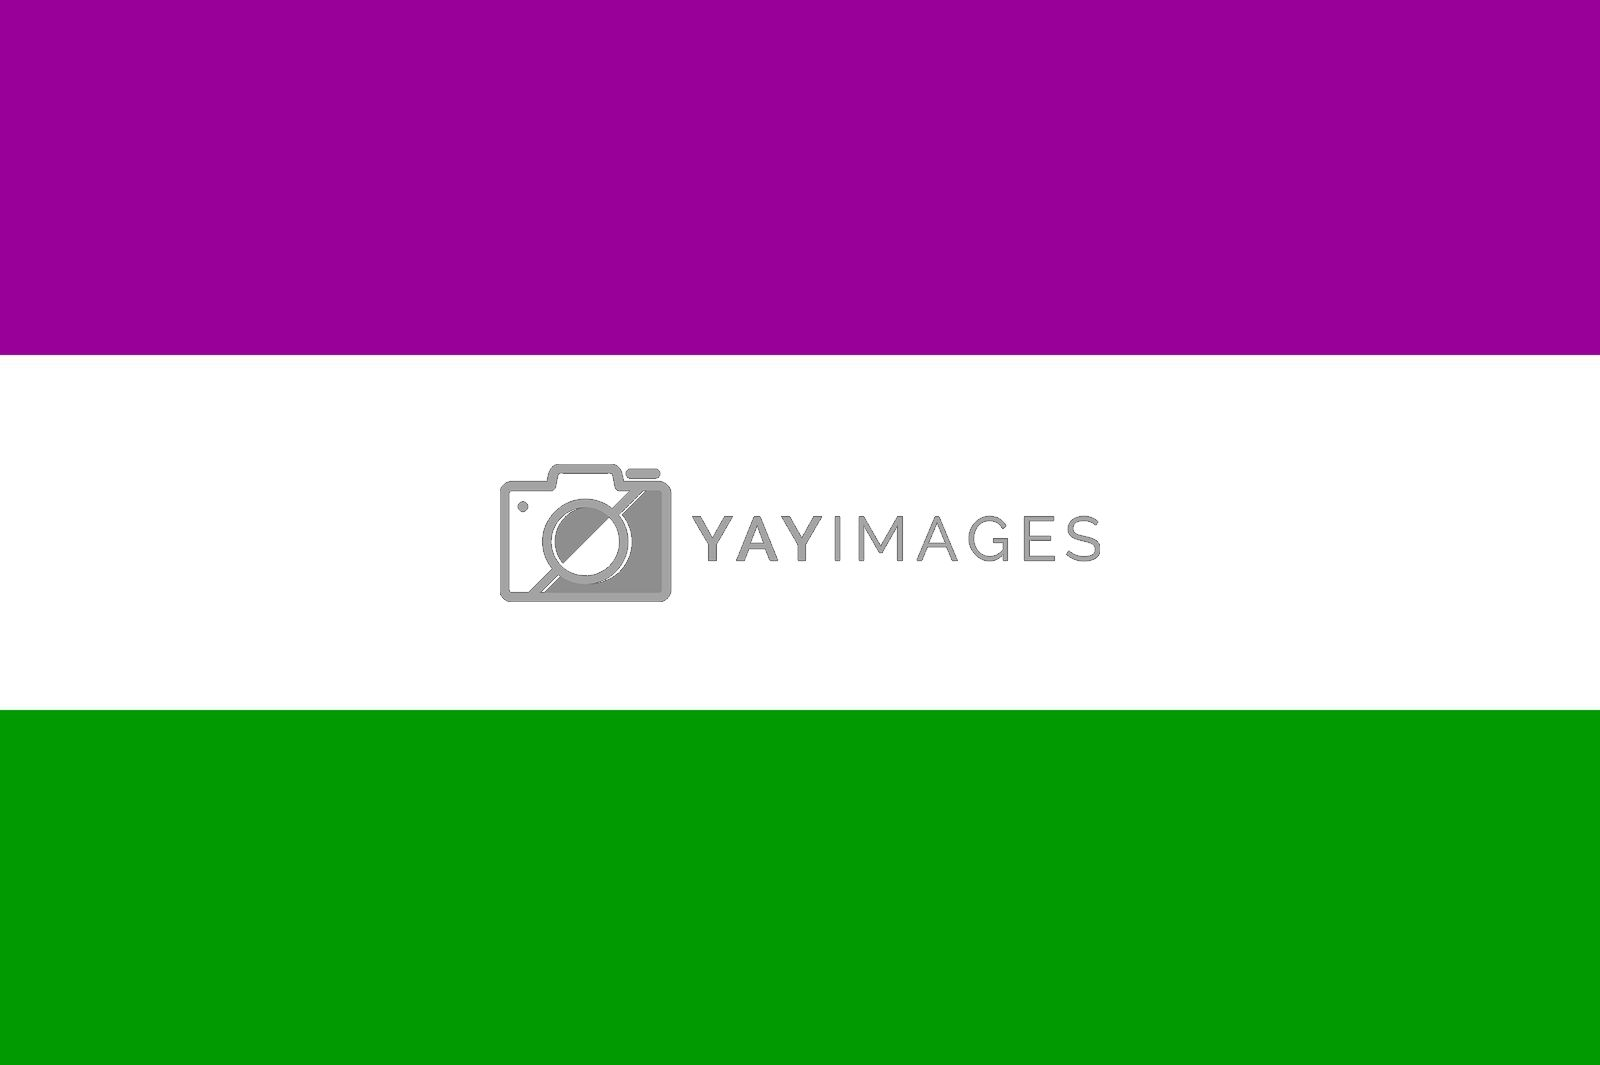 united states of america Suffragette flag hisorical symbol